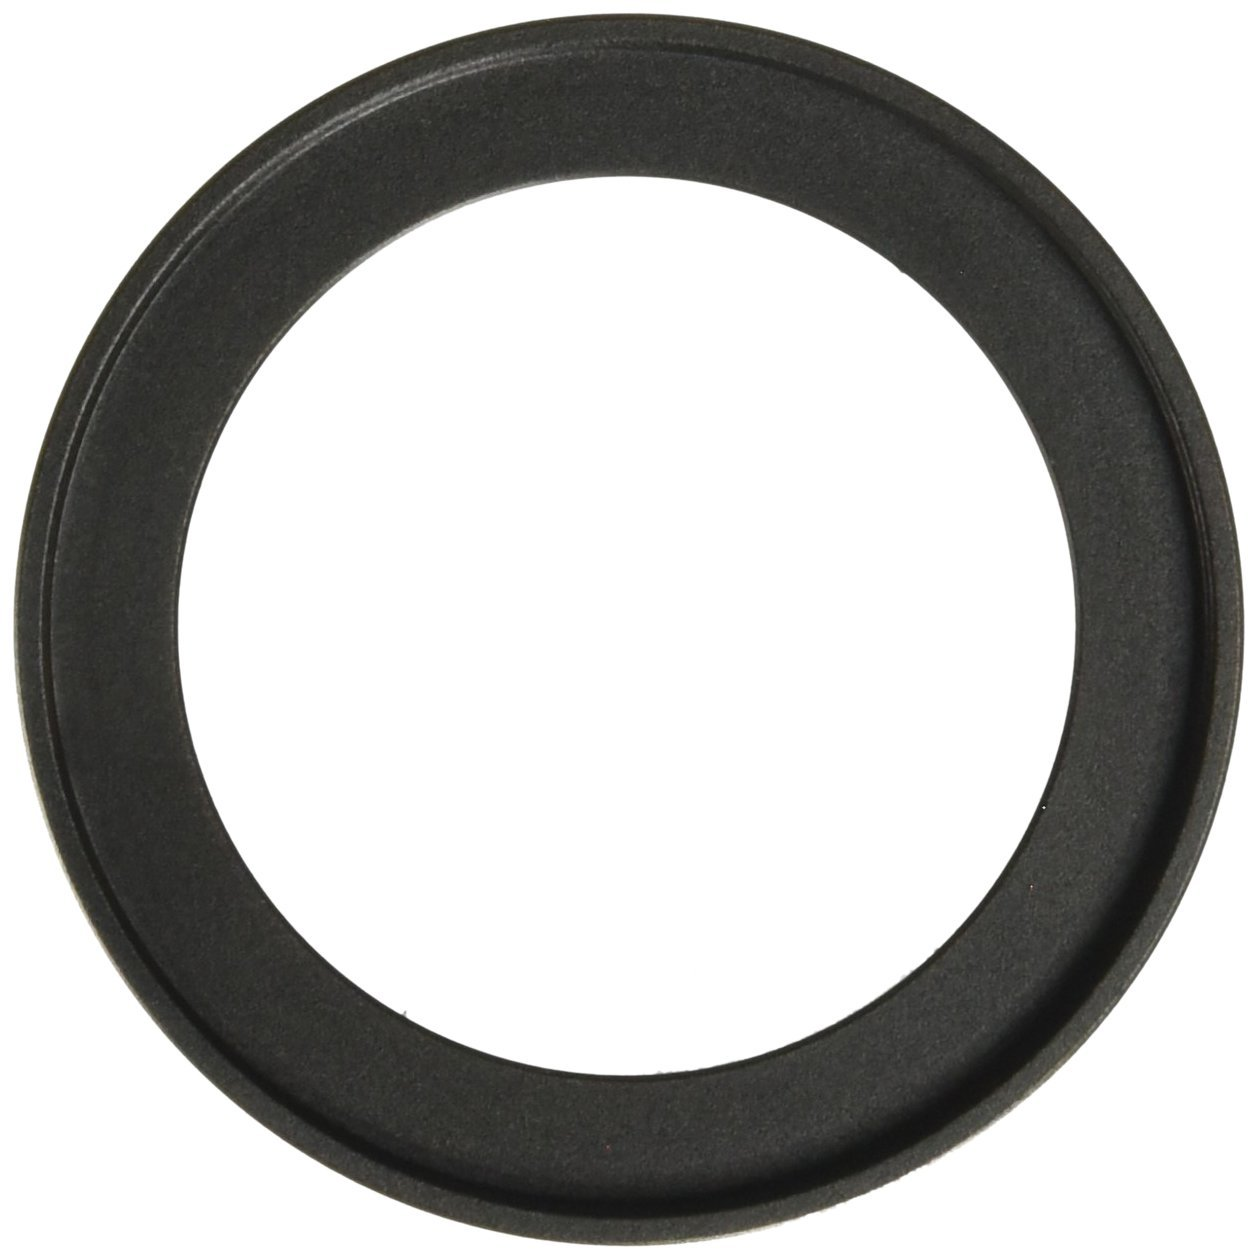 Step-Up Filter Conversion Ring - $7